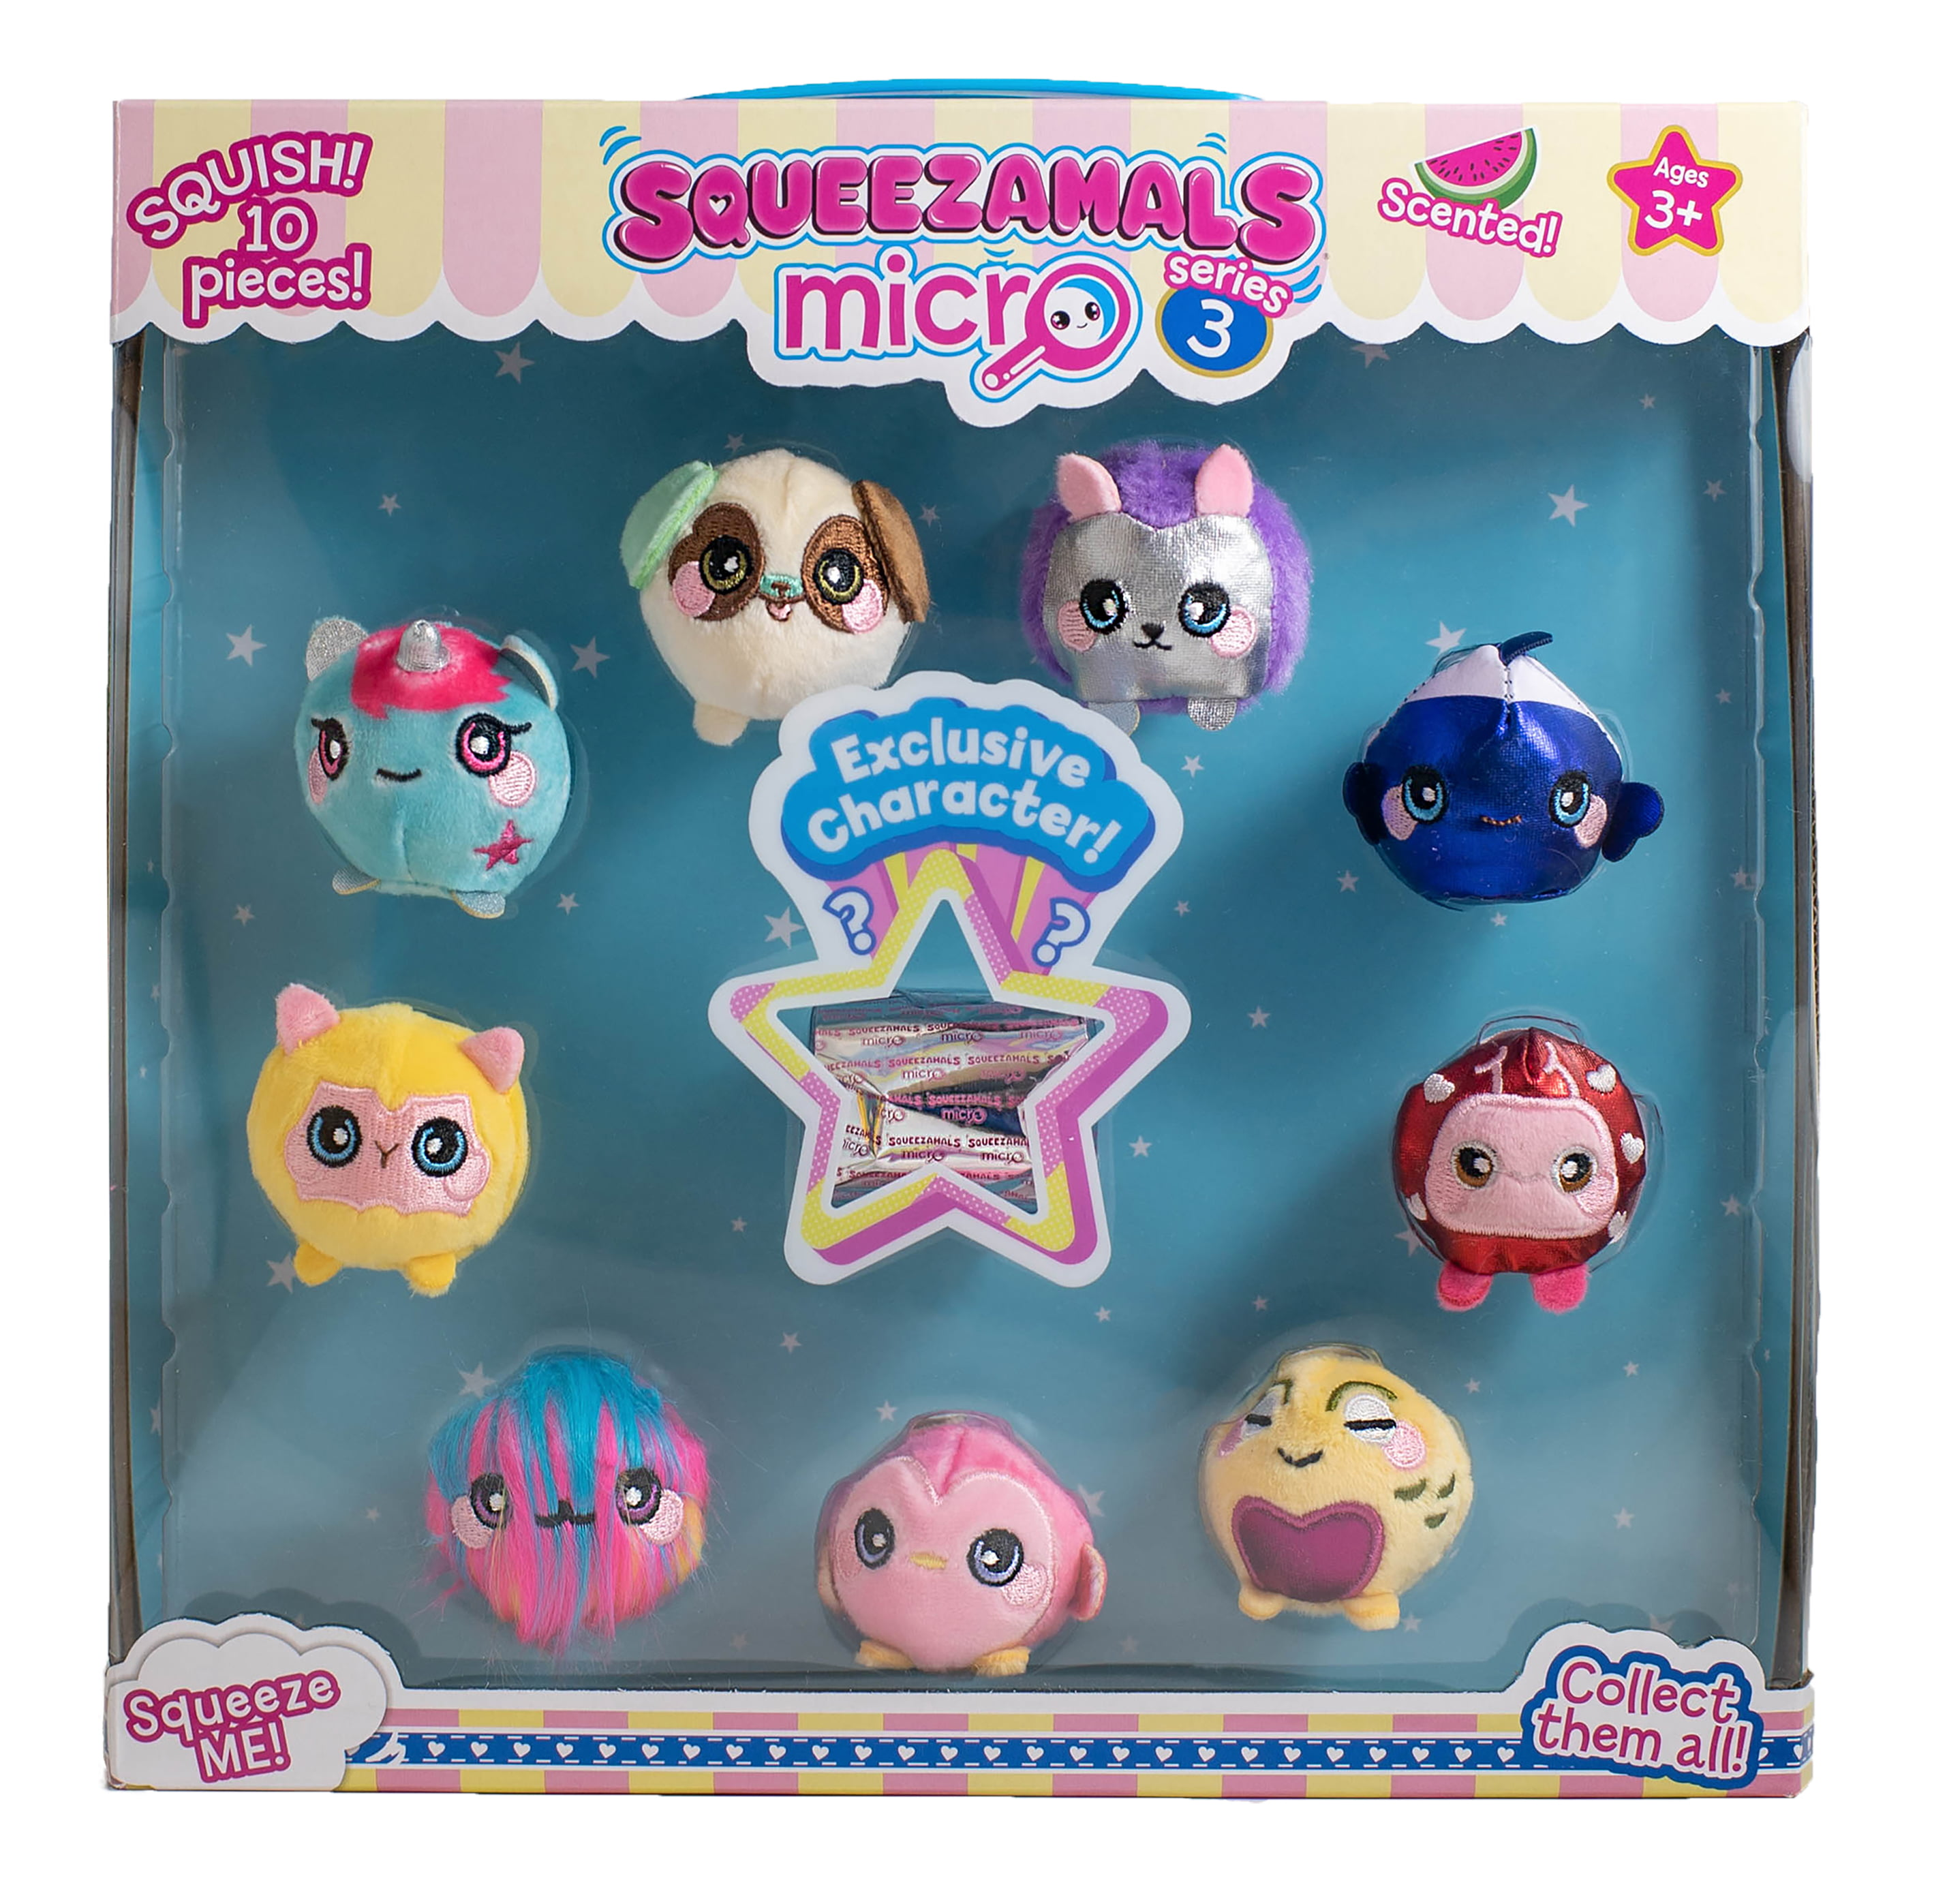 Squeezamals, Micro Series 3 10-Pack, Collectible Animals Scented Soft Cute Slow Rise with Mystery Included (Styles/Assortments Vary)